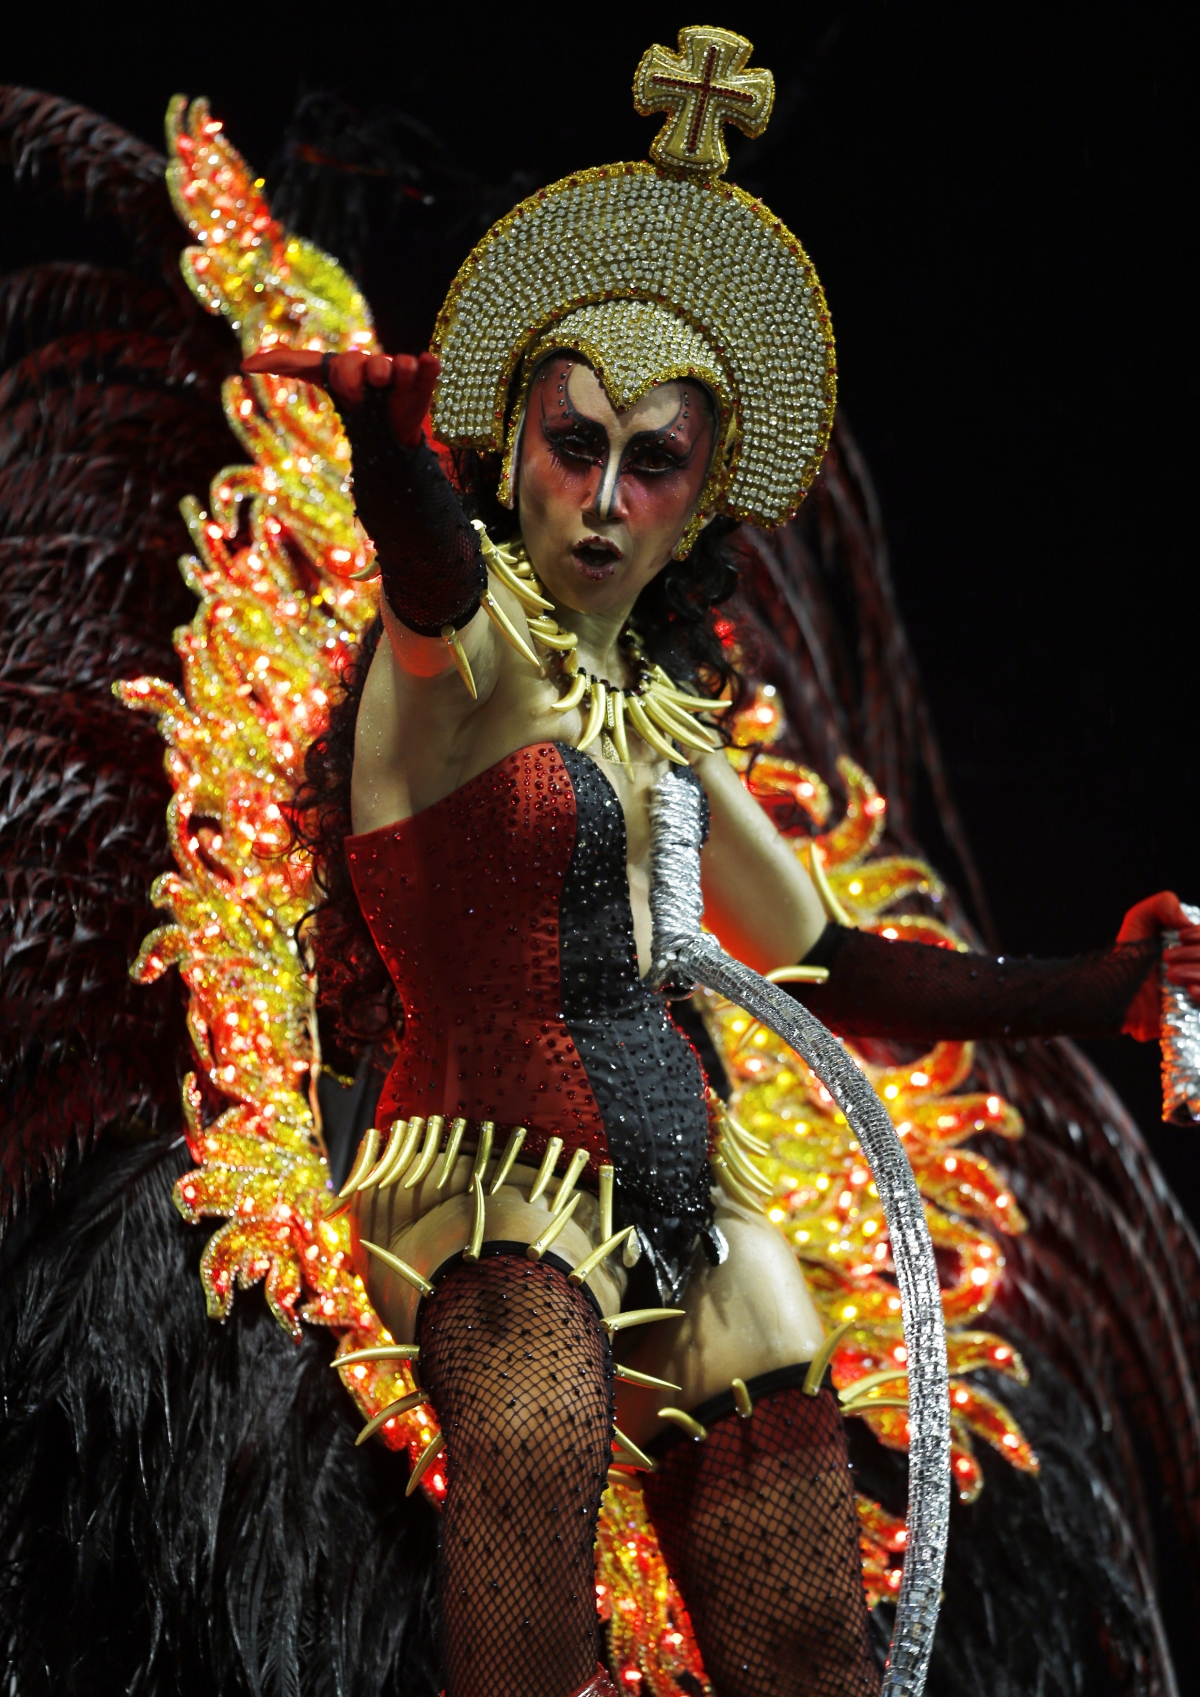 A reveller from the X9 samba school takes part in the first night of the Special Group of the annual Carnival parade in Sao Paulo's Sambadrome March 1, 2014.